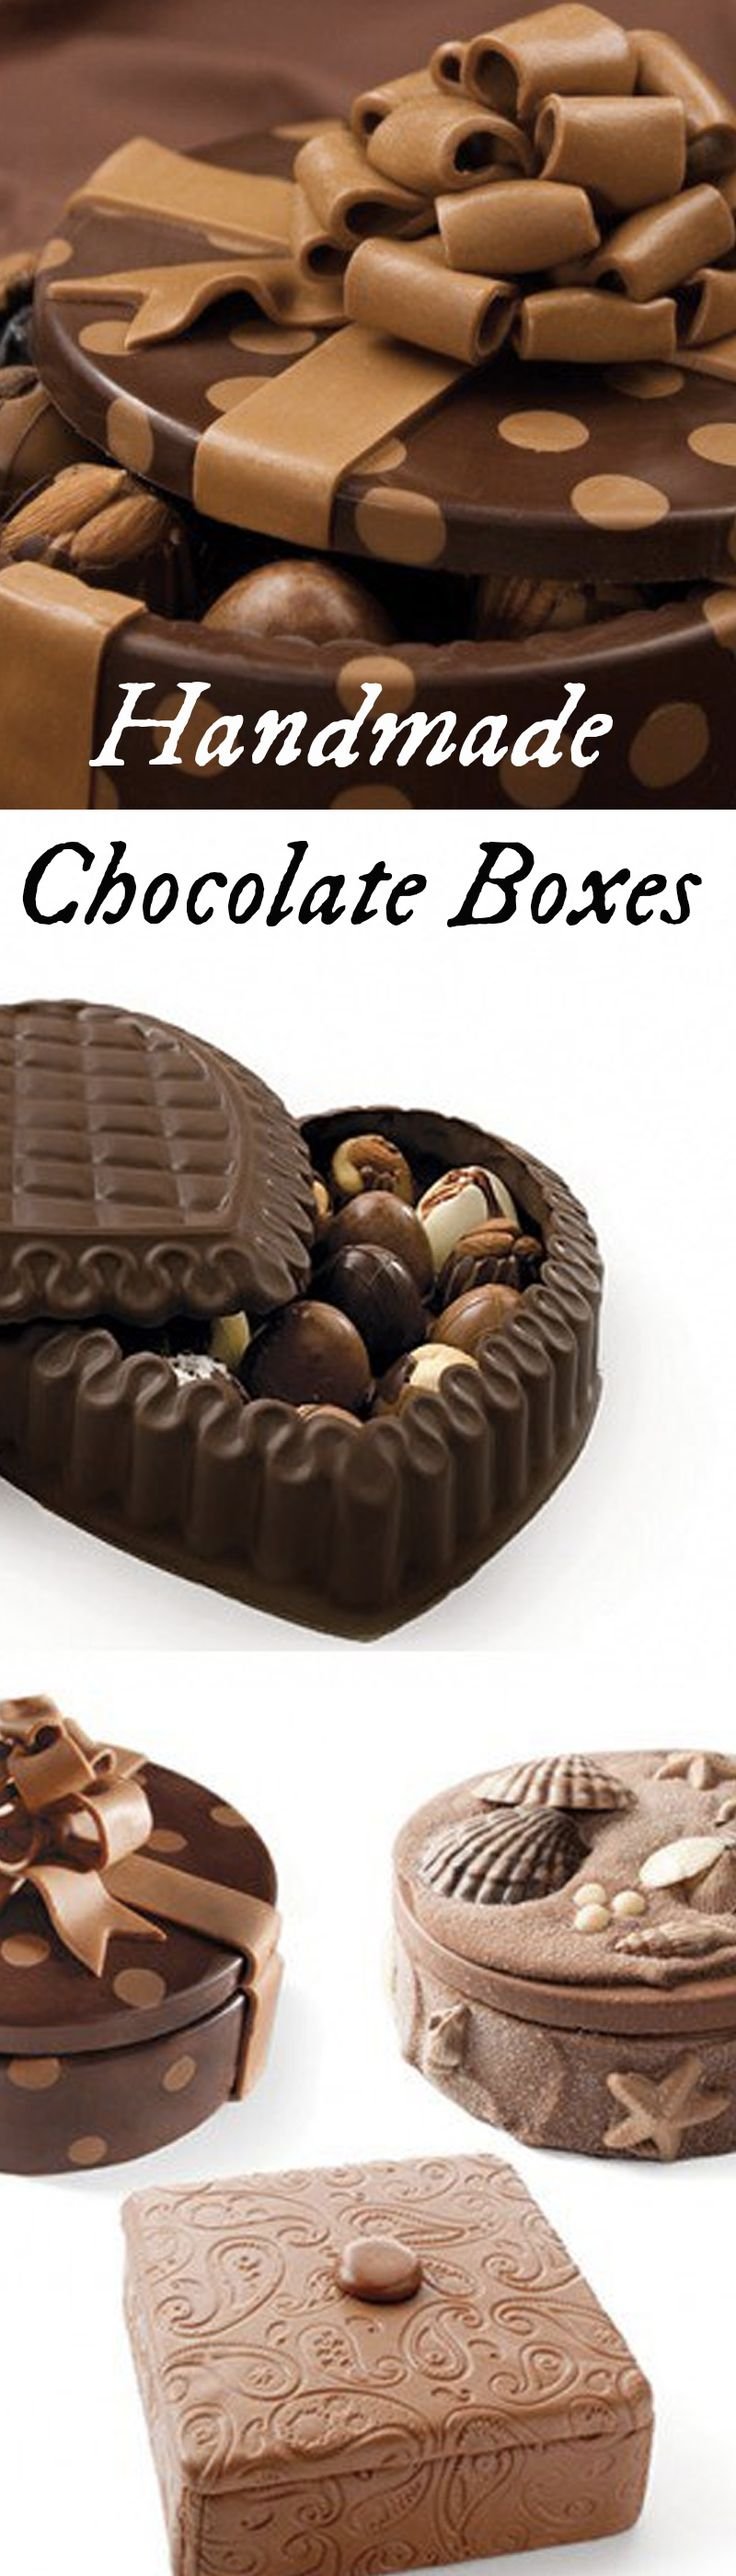 Truffle-filled handmade chocolate boxes make a great Valentine's Day gift.